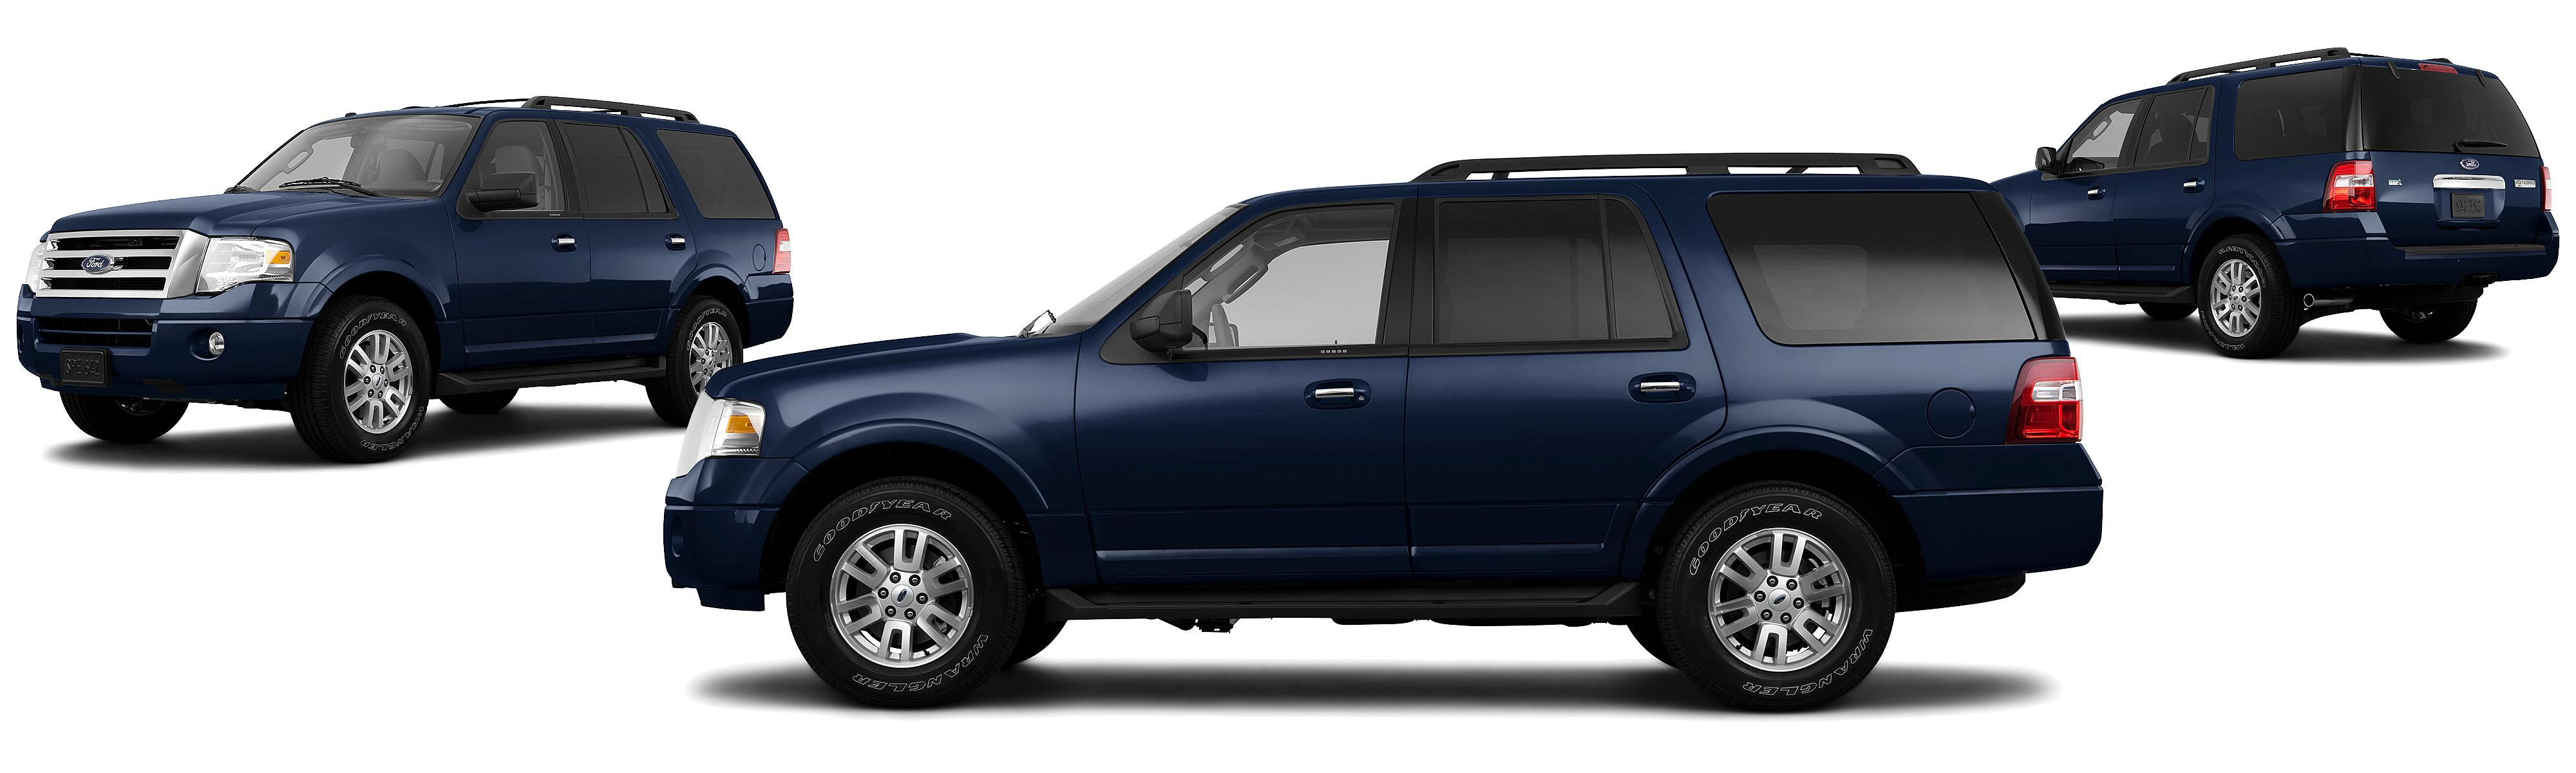 2011 ford expedition 4x2 xl 4dr suv research groovecar